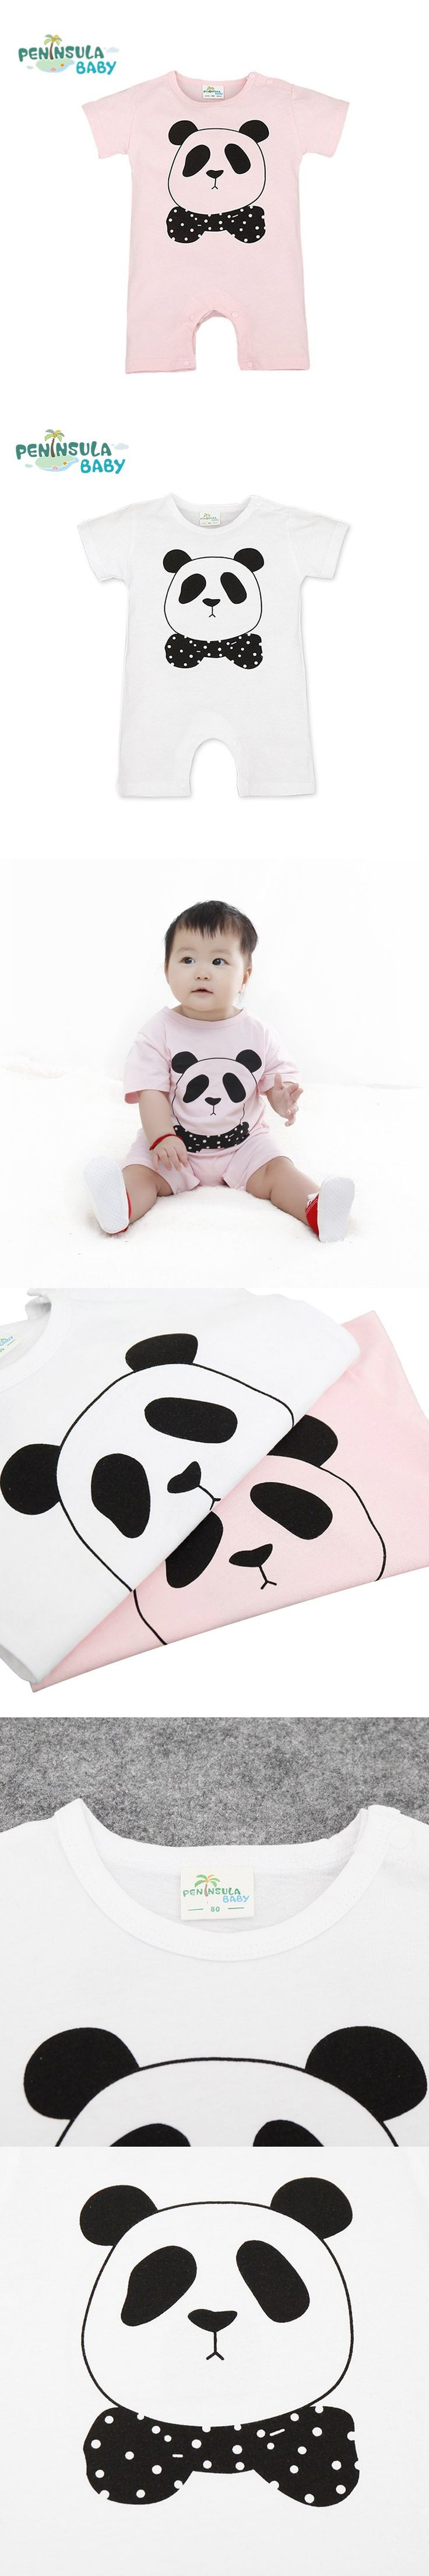 Hot Summer New Baby Rompers Cartoon Panda Casual Short Sleeve Jumpsuits New Born Boys Girls Clothes Cute Toddler Costume